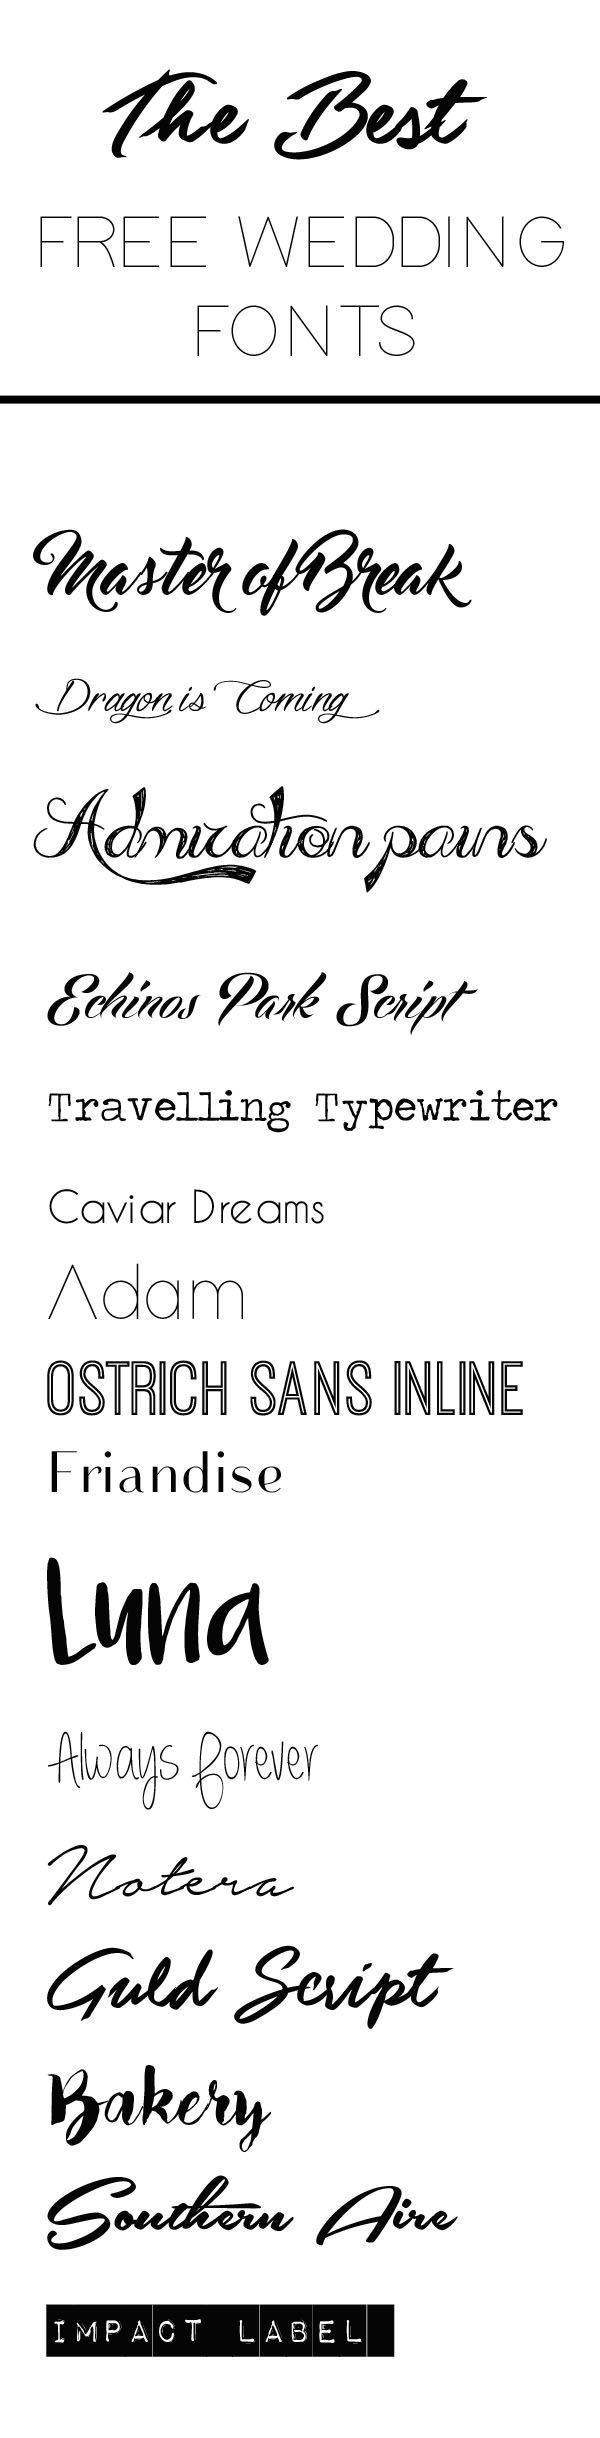 The Best Free Fonts For Wedding Invitations, Place Cards, Save The Dates